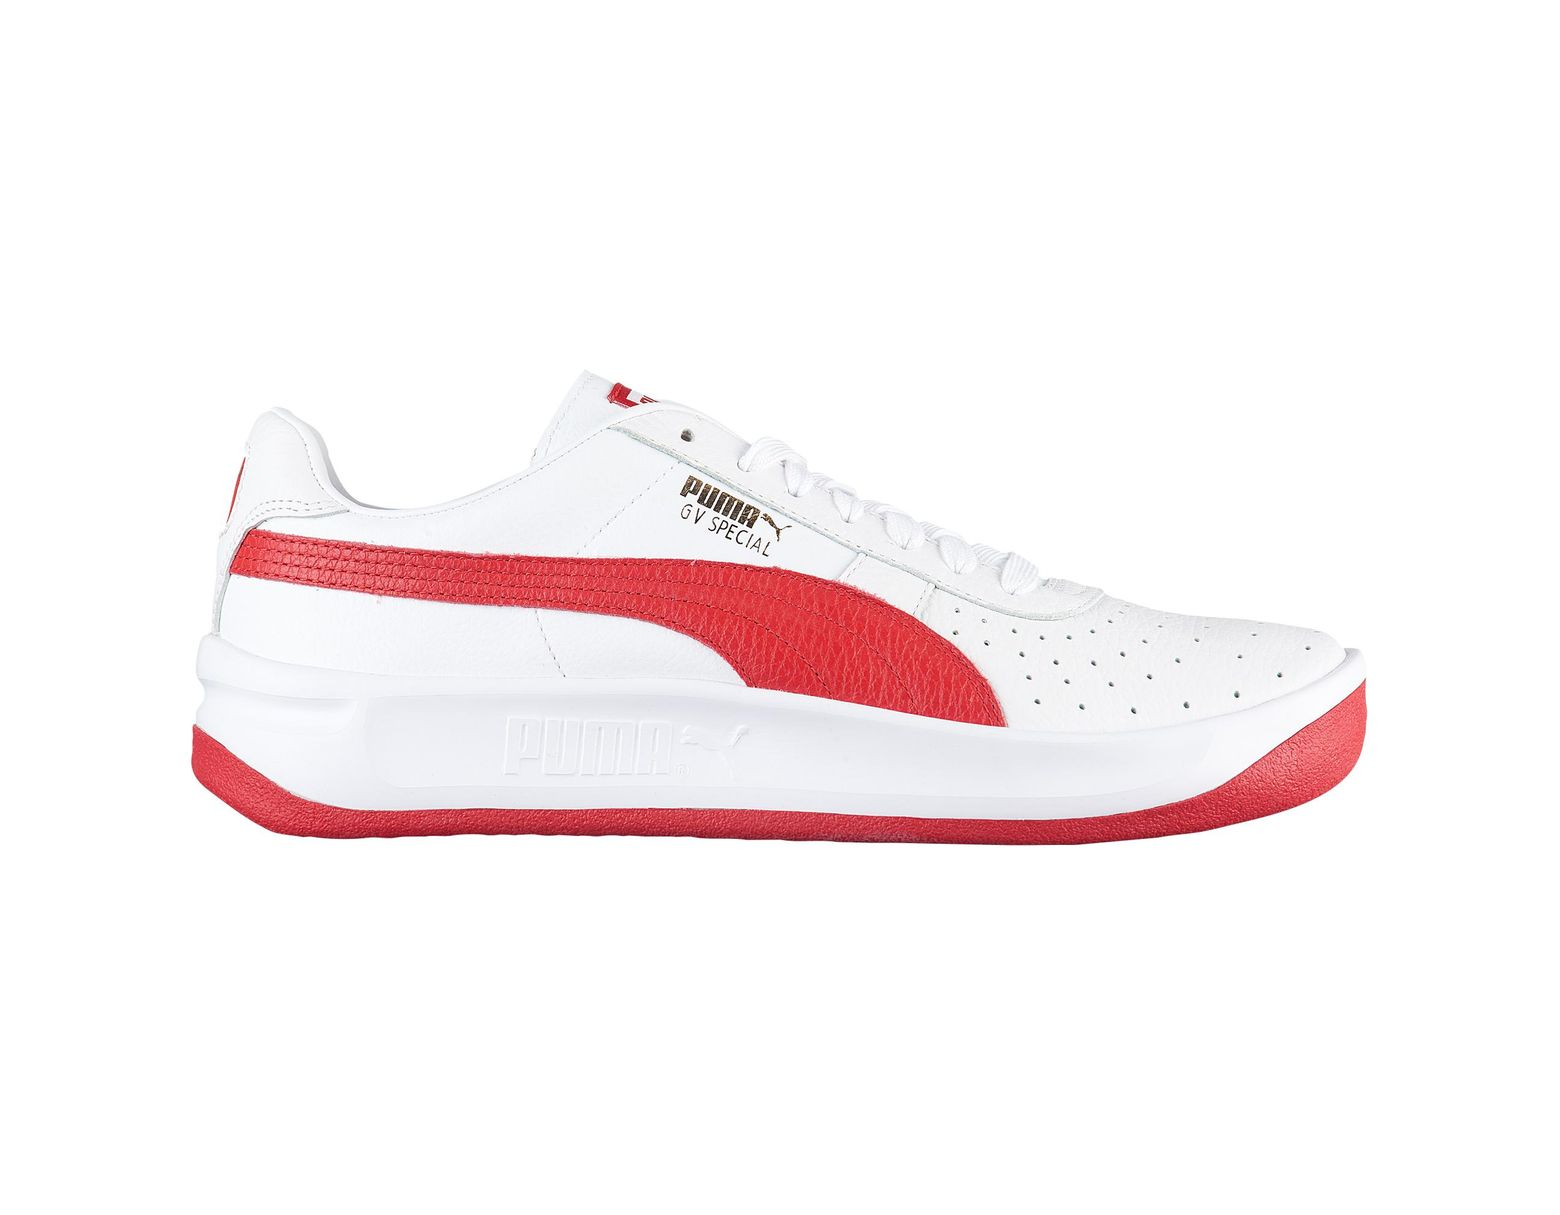 962b15433ab PUMA - Red Gv Special + Tennis Shoes for Men - Lyst